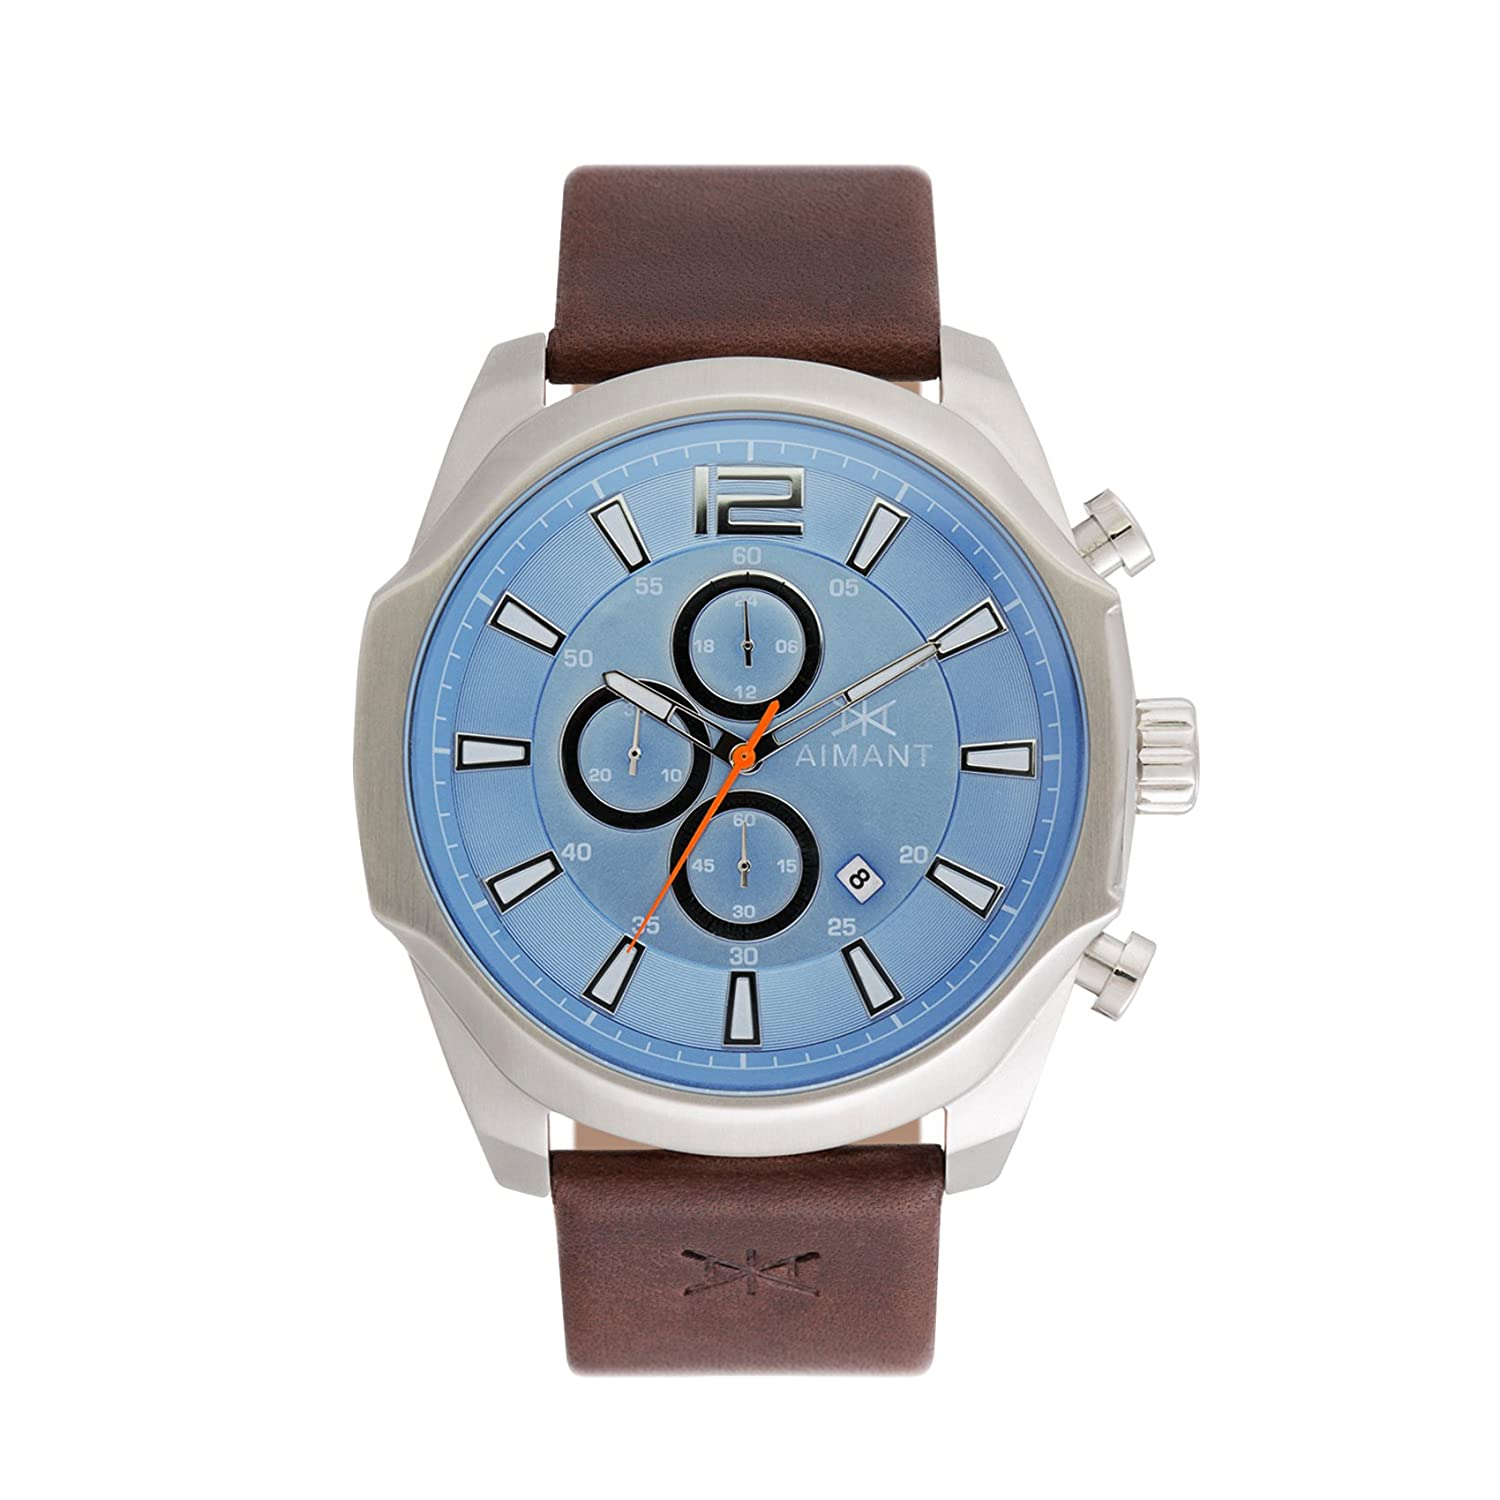 Amazon.com: AIMANT Mens Lyon Silver with Brown Leather Band Watch GLY-150L5-2S: Watches